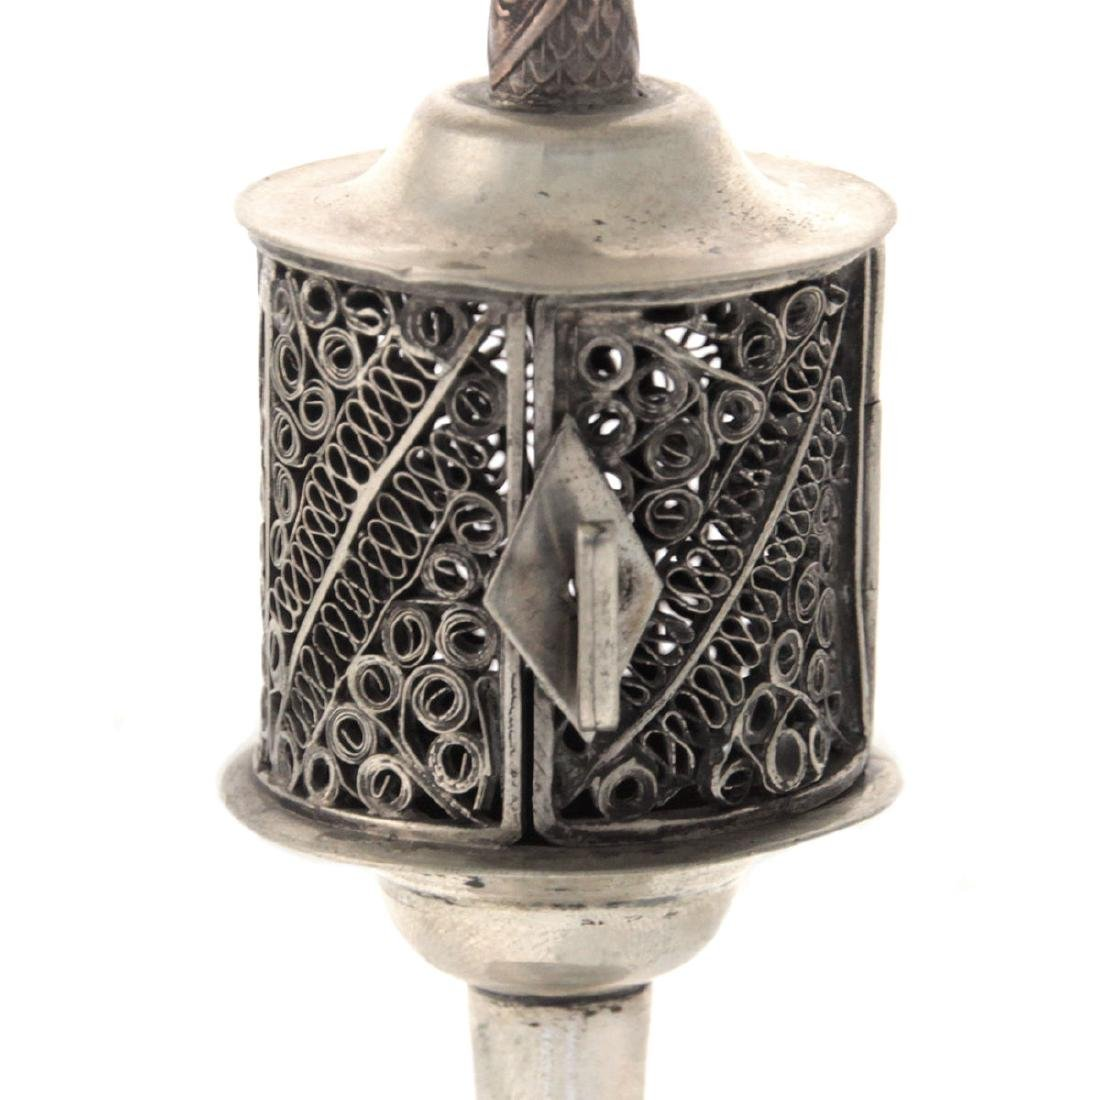 Silver and Filigree Spice Tower Box Besamim, Probably - 2